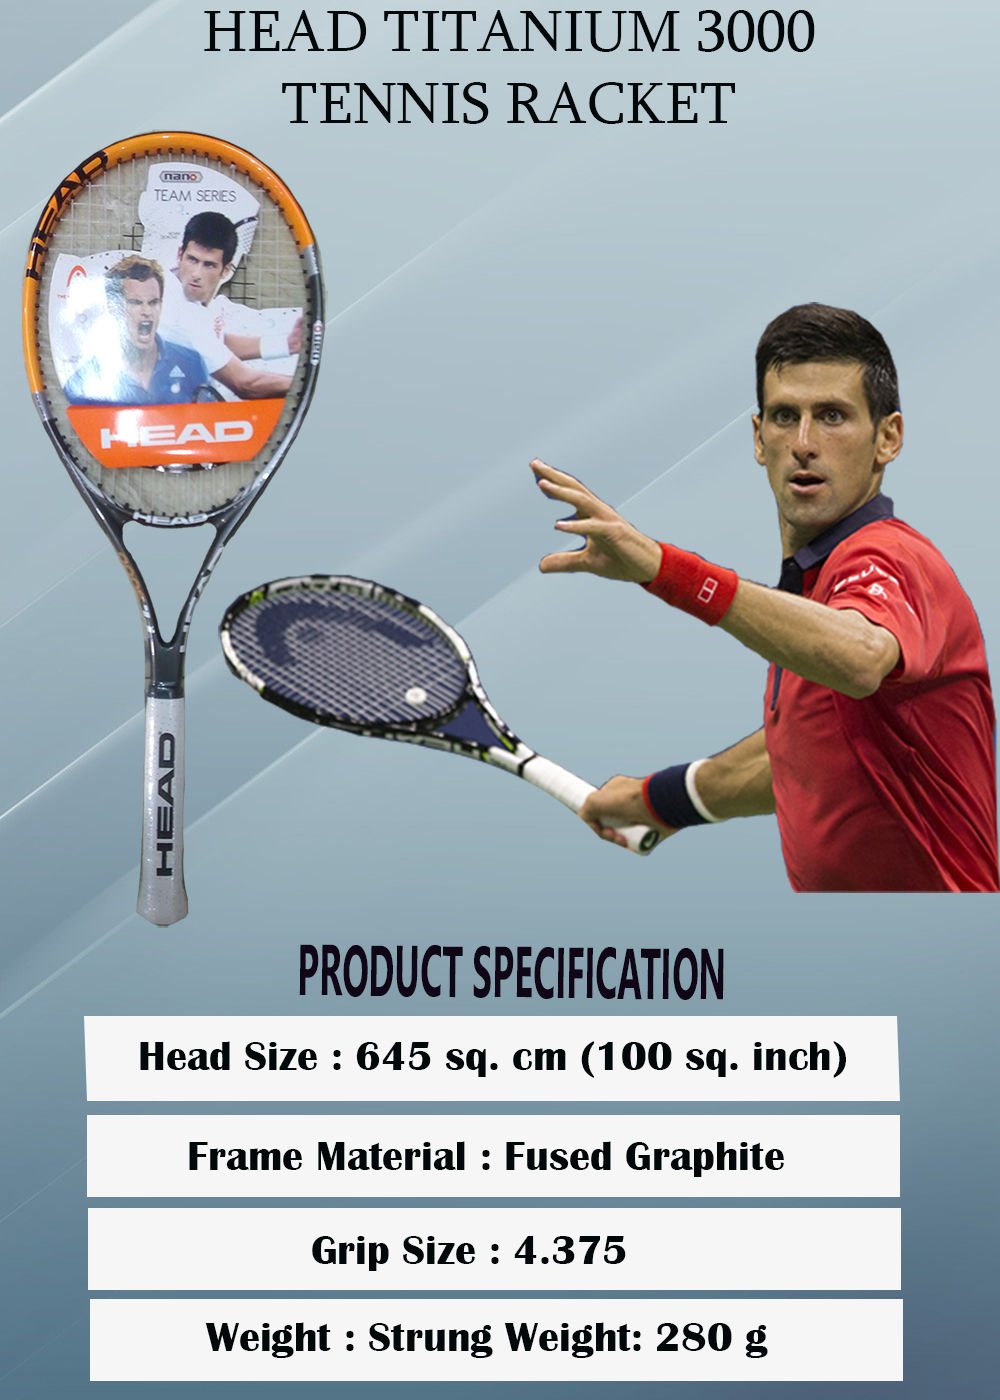 Head Titanium 3000 Tennis Racket_2